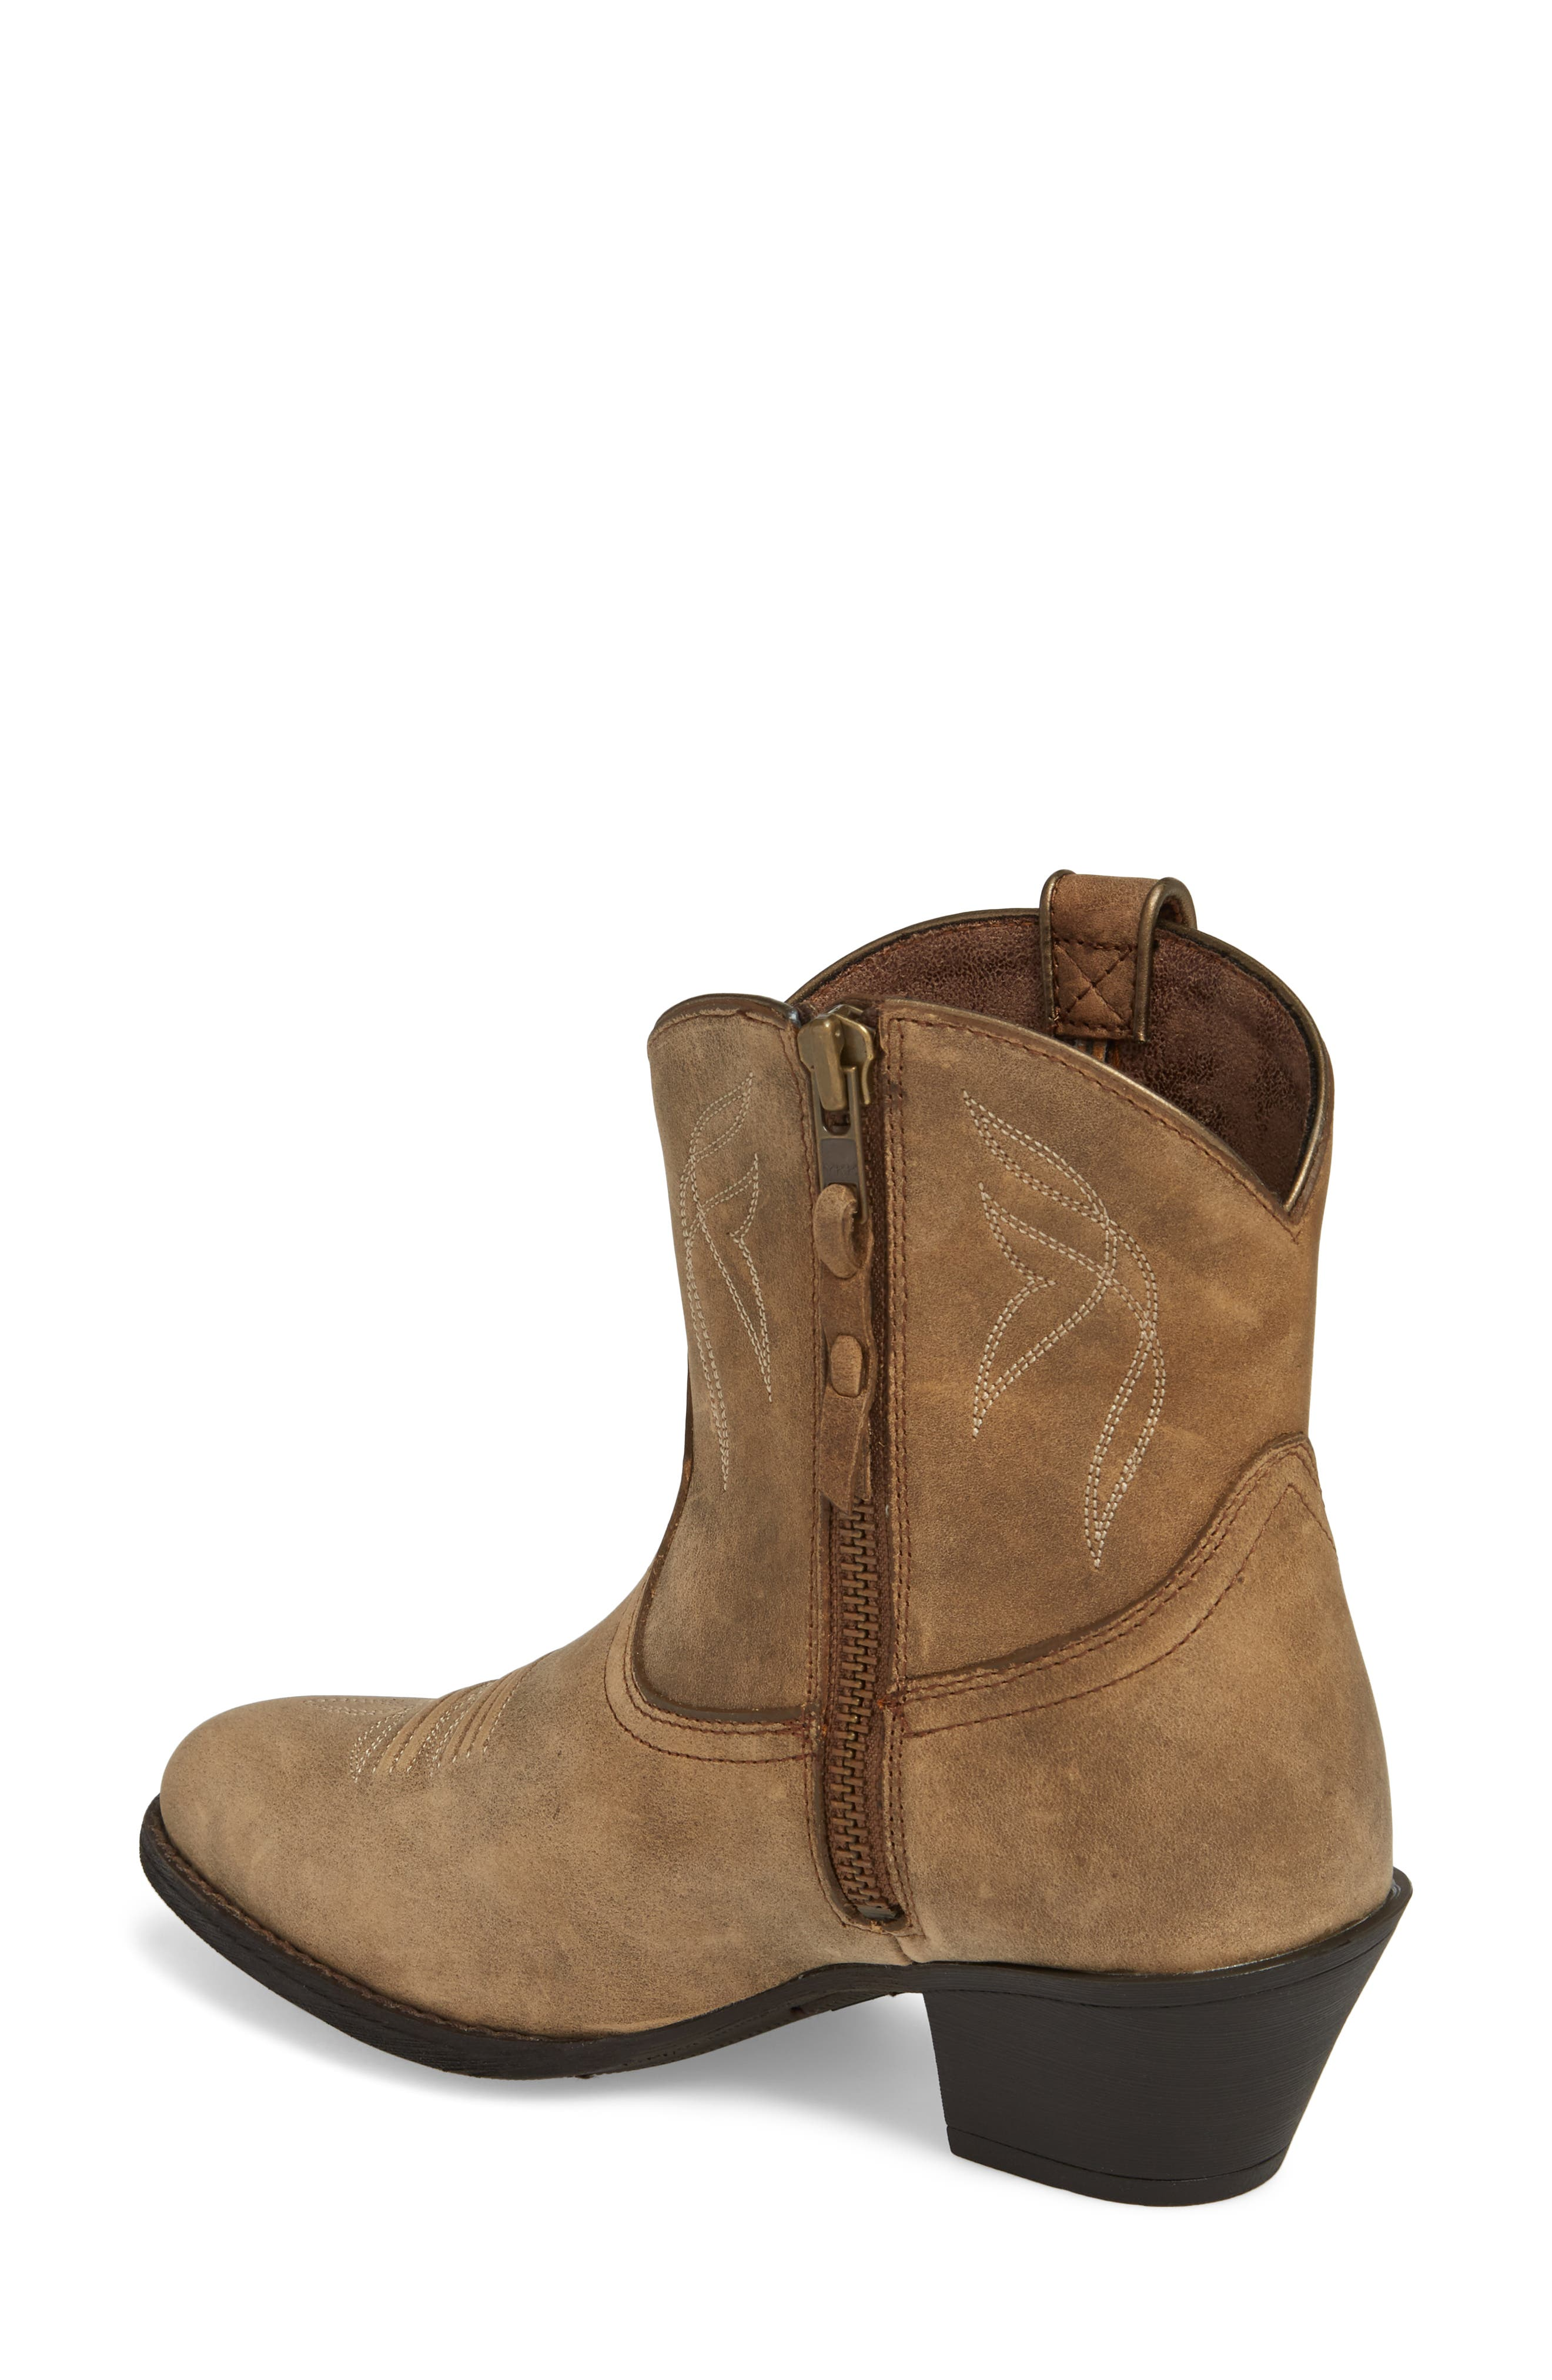 Darlin Short Western Boot,                             Alternate thumbnail 2, color,                             204